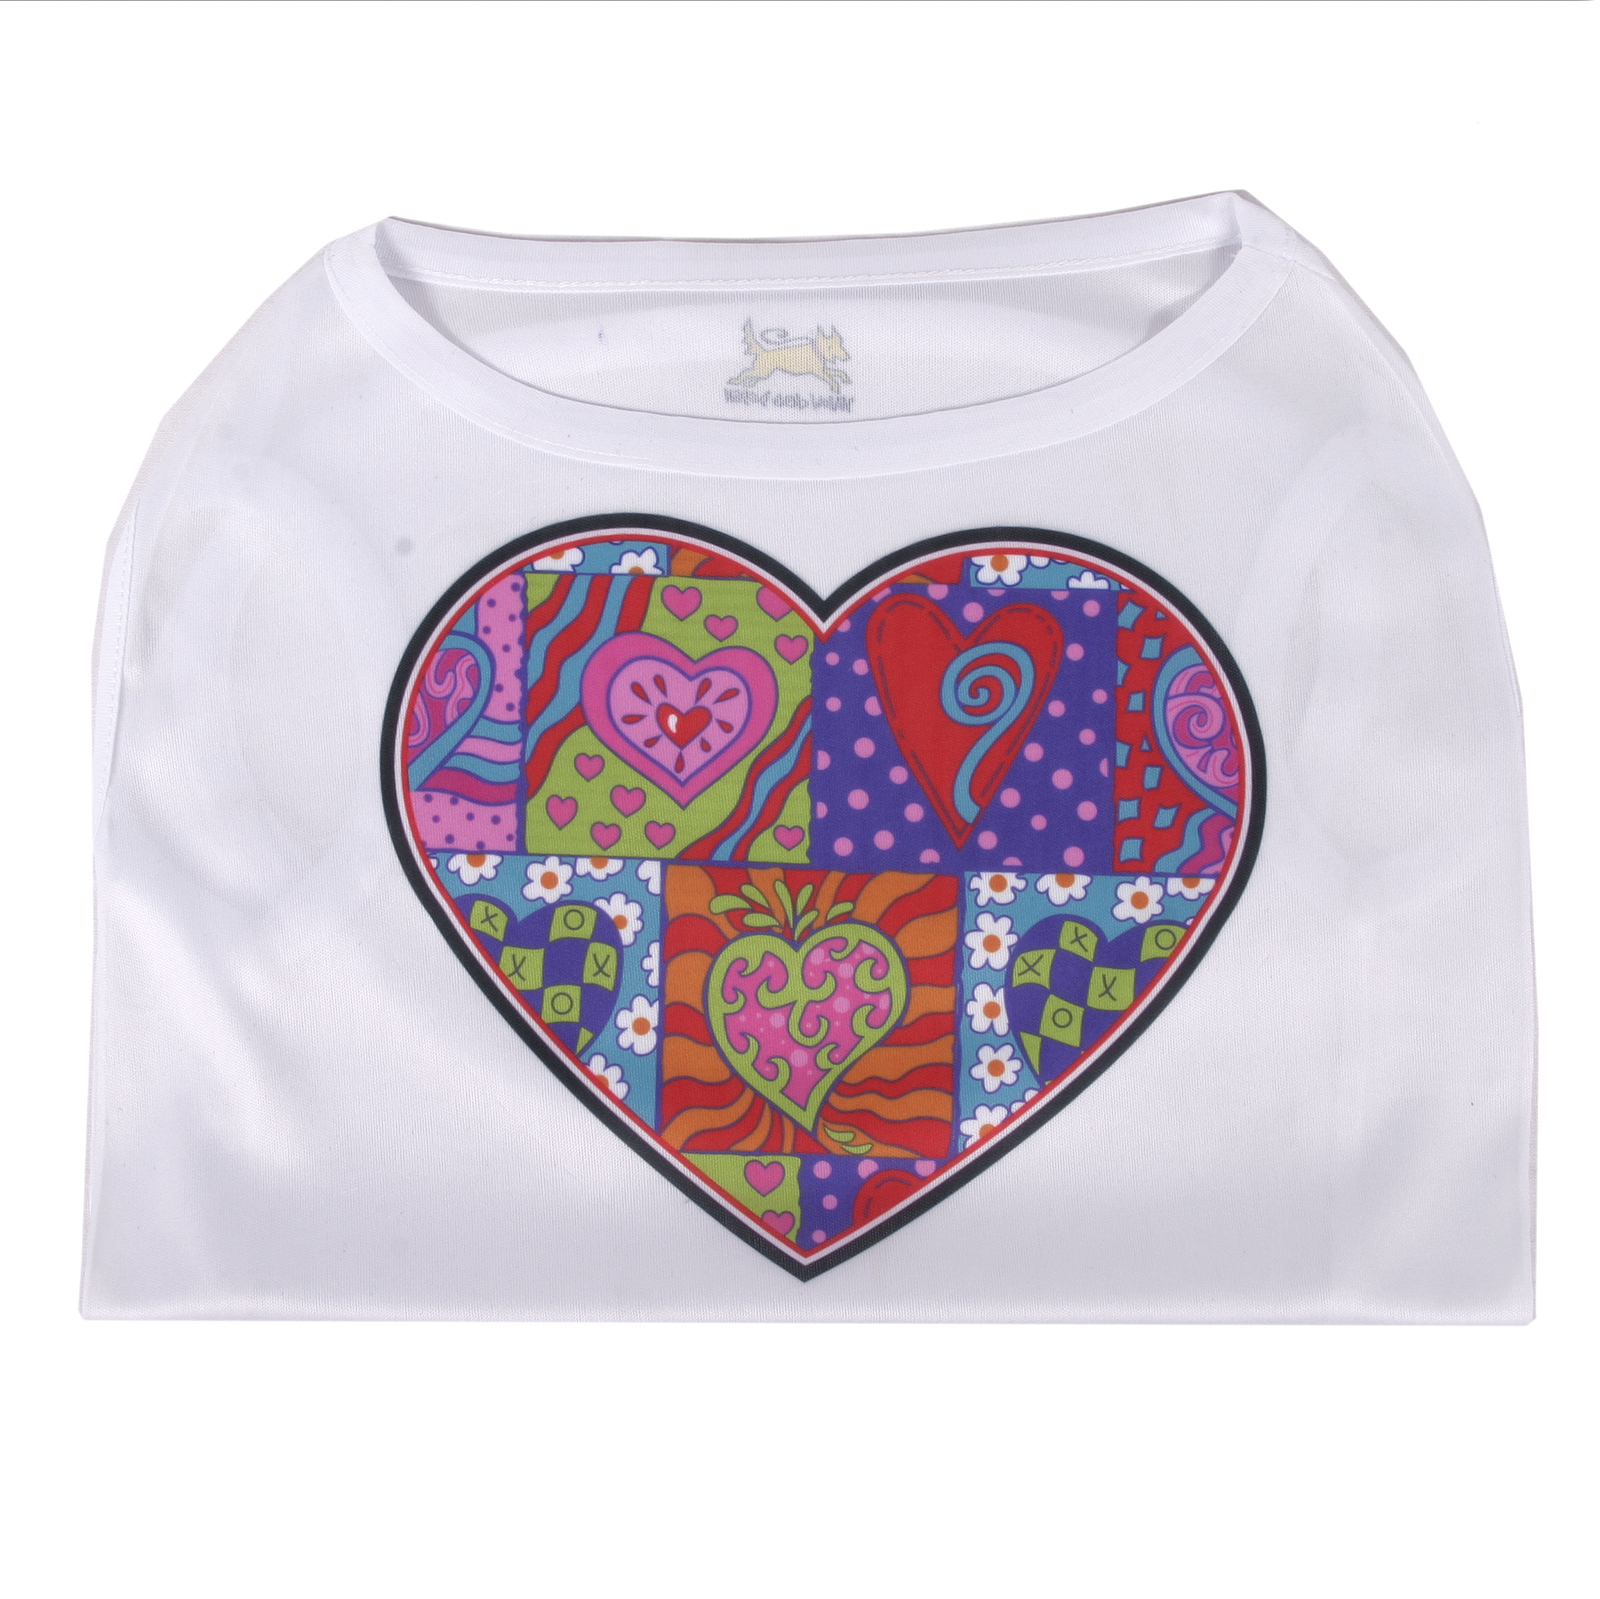 Crazy Hearts Shirt